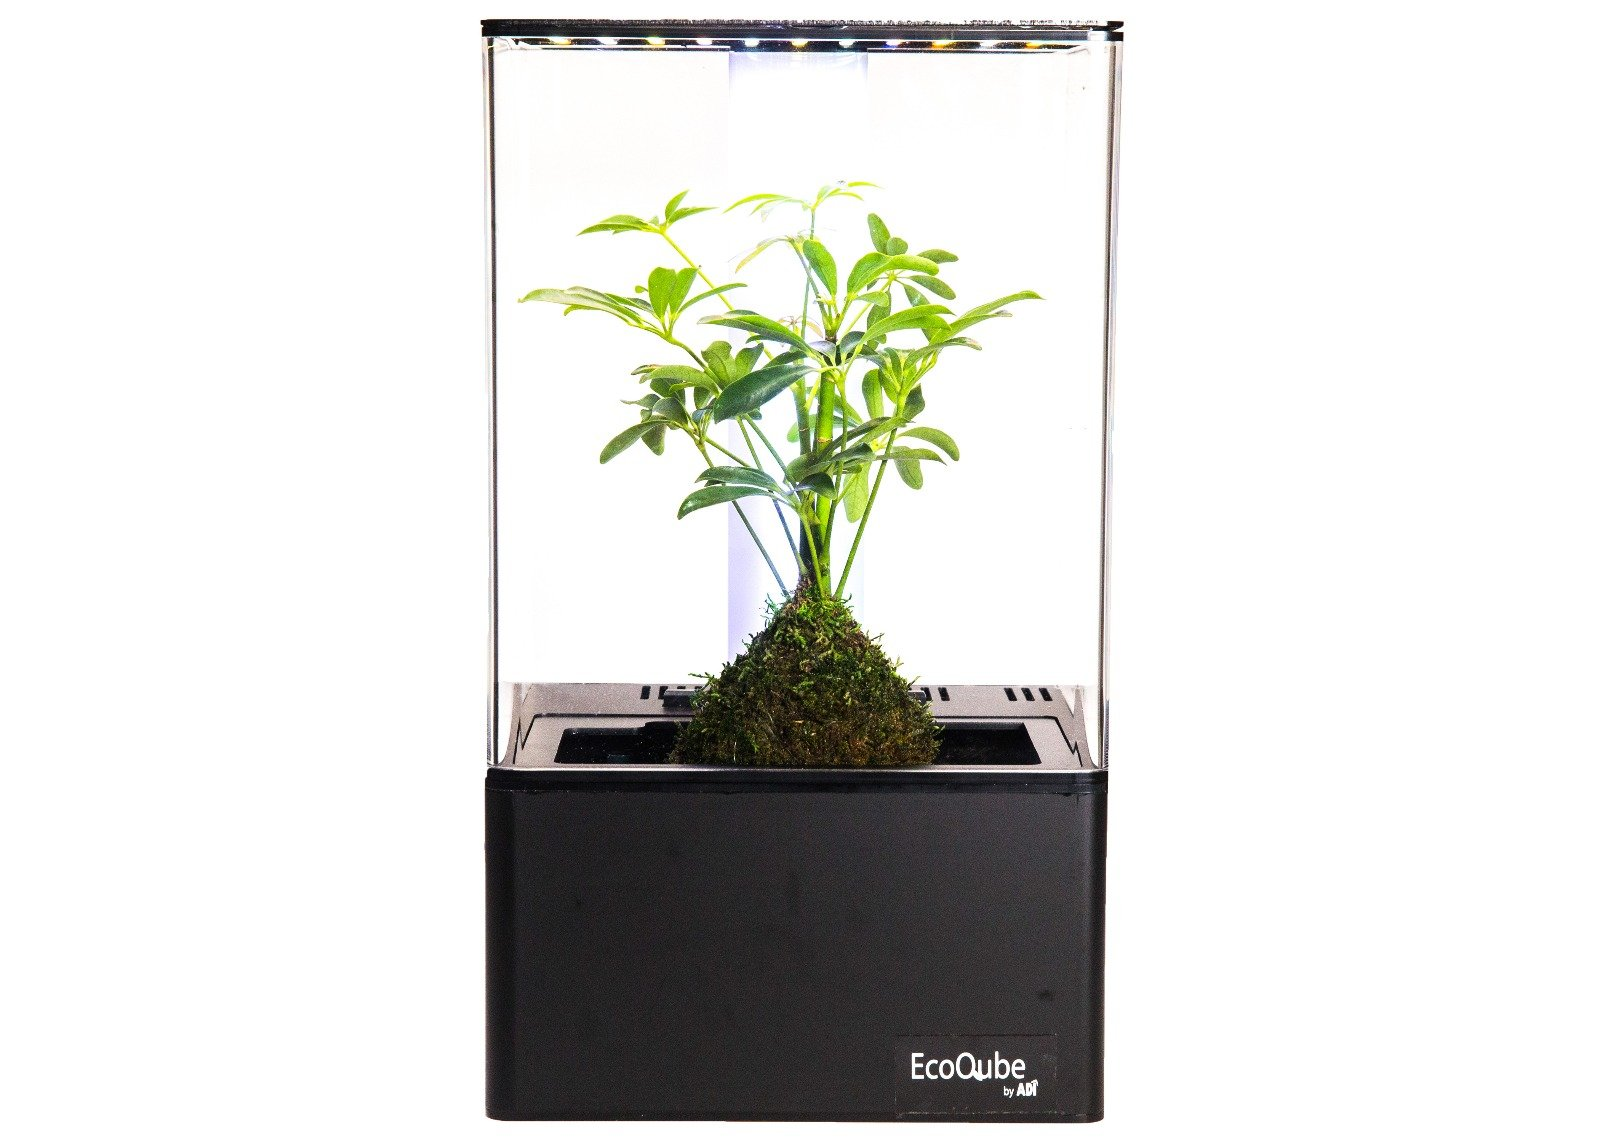 EcoQube Air - Decorative Hydroponics Indoor Herb Home Garden Kit with Full Spectrum LED Grow Light and True Hepa-Type Filter Air Purifier (Premium UV Filter Model) by EcoQube